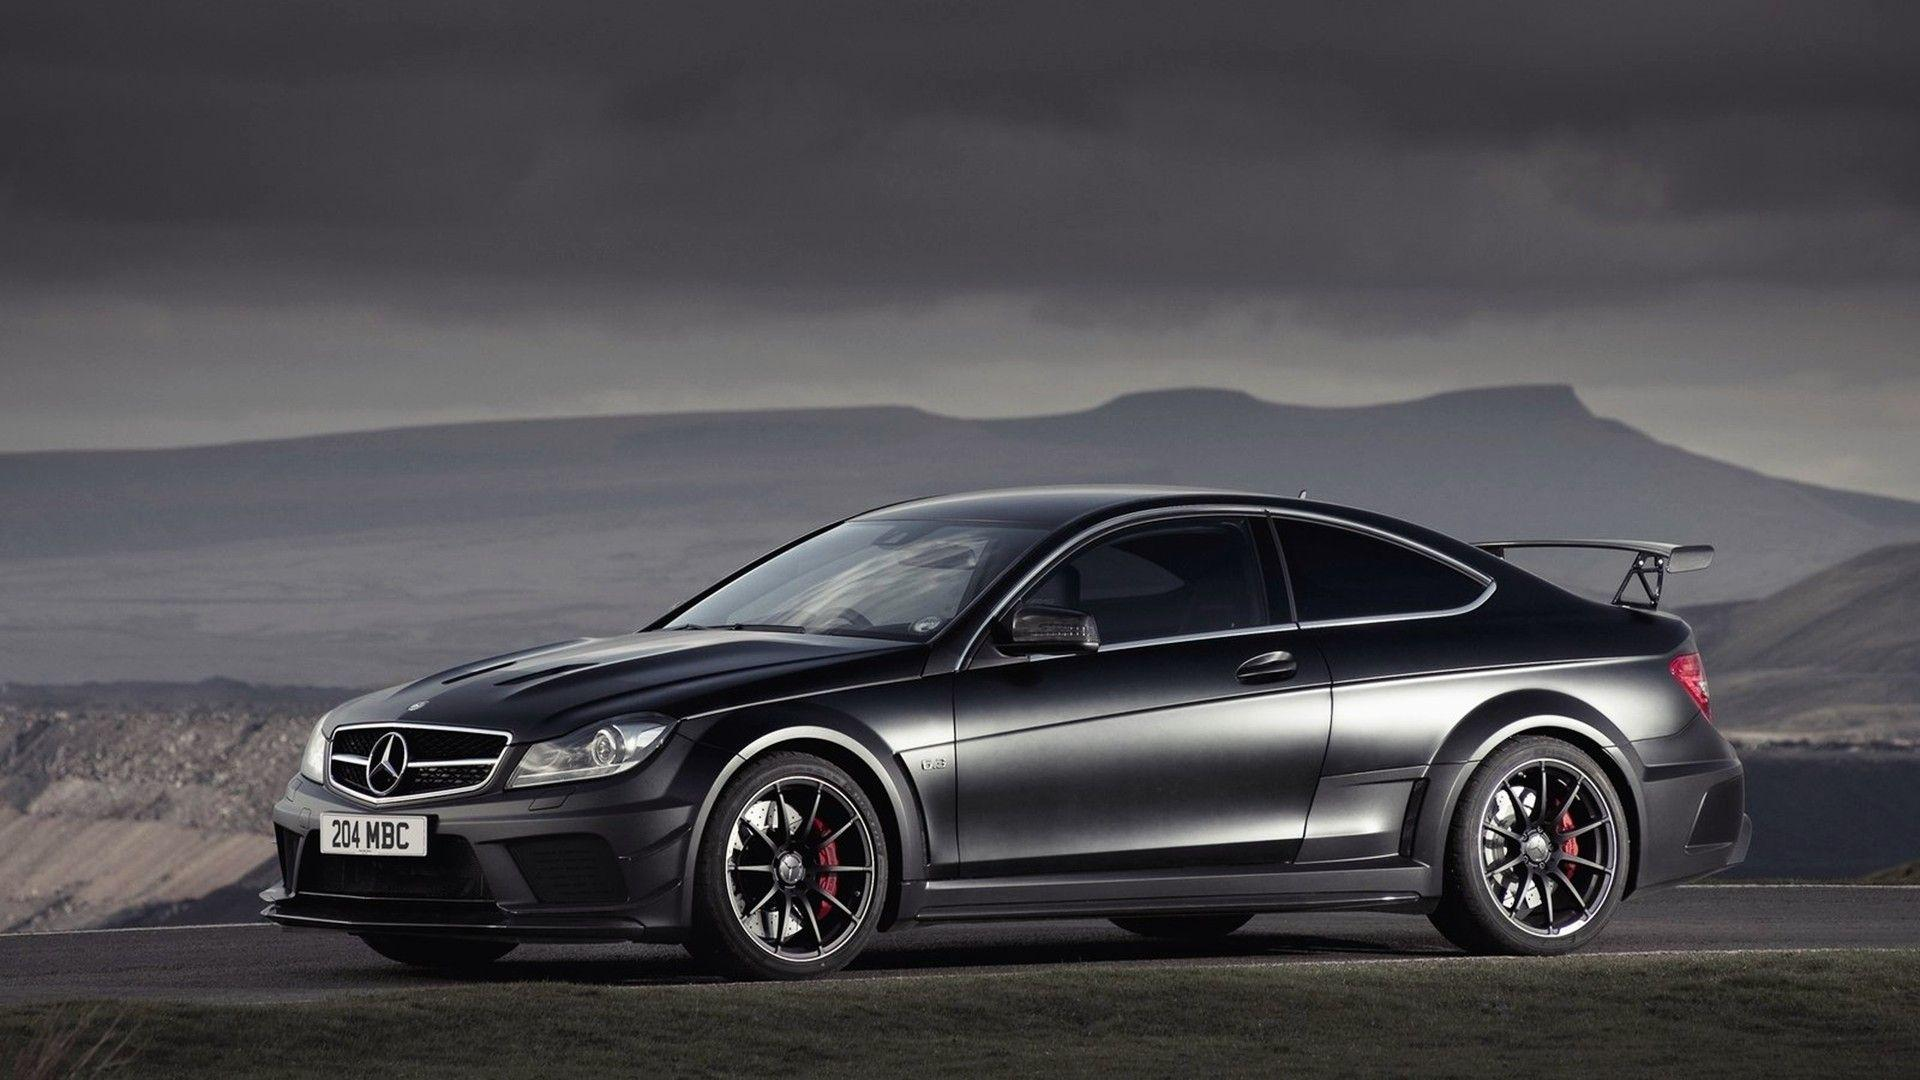 AMG C63 Wallpapers - Wallpaper Cave